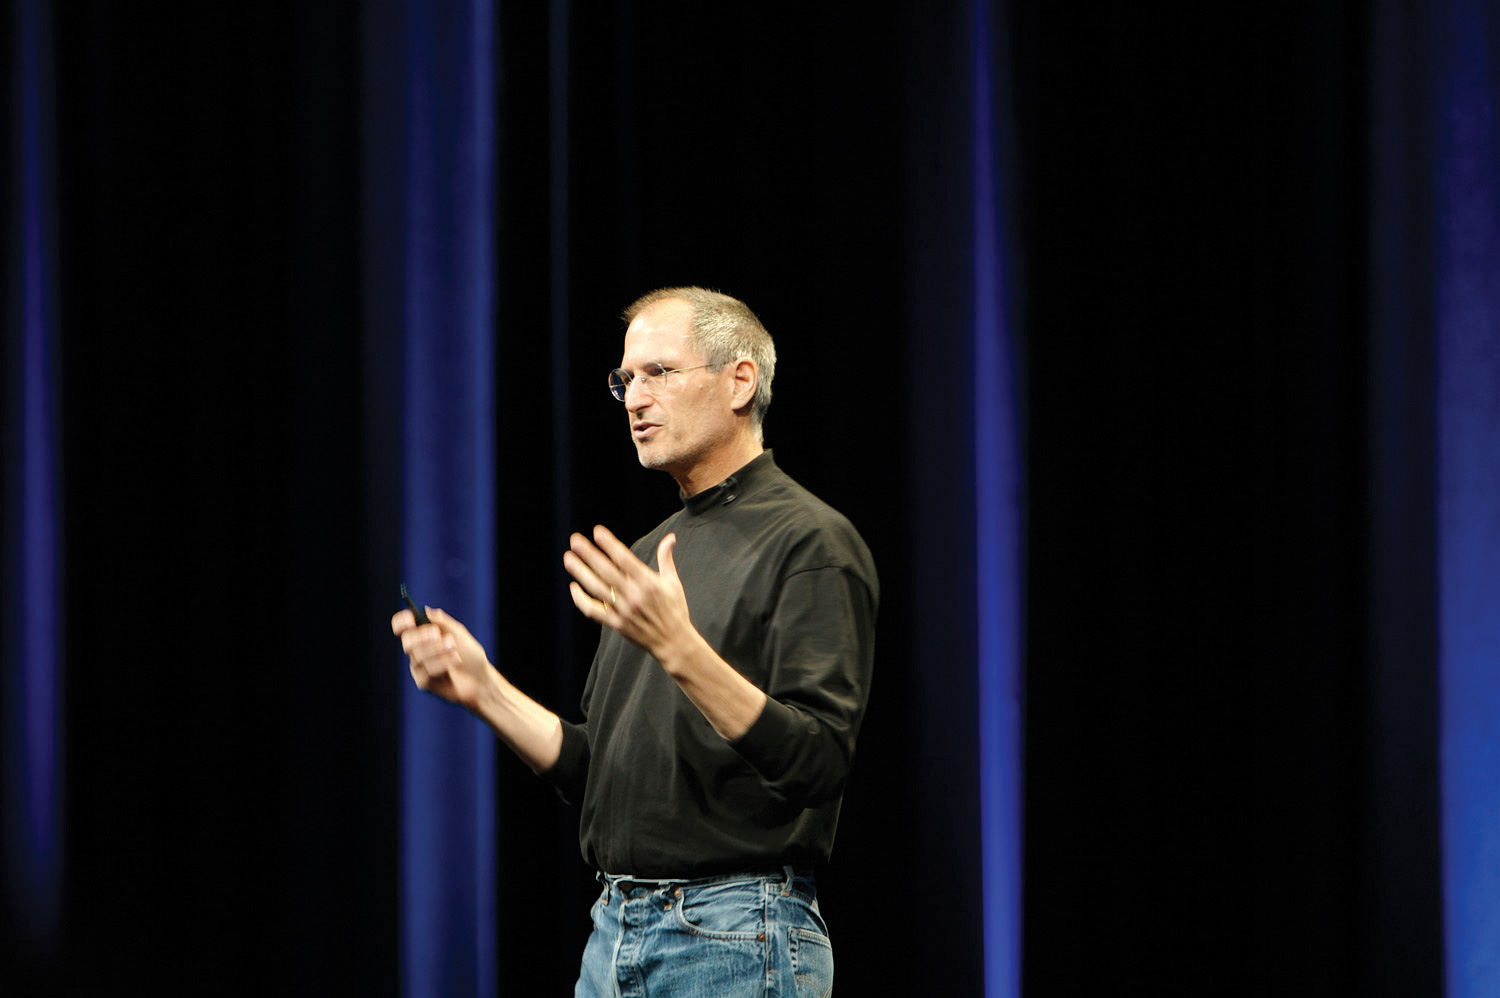 'is apple an ethical organization ' However, it has been questionable whether the profits are made ethically (apple inc, 2012) in the recent past appleinc has been criticized for behaving unethically and not demonstrating true corporate social responsibility on their part popular media and business release had found apple behavior much.